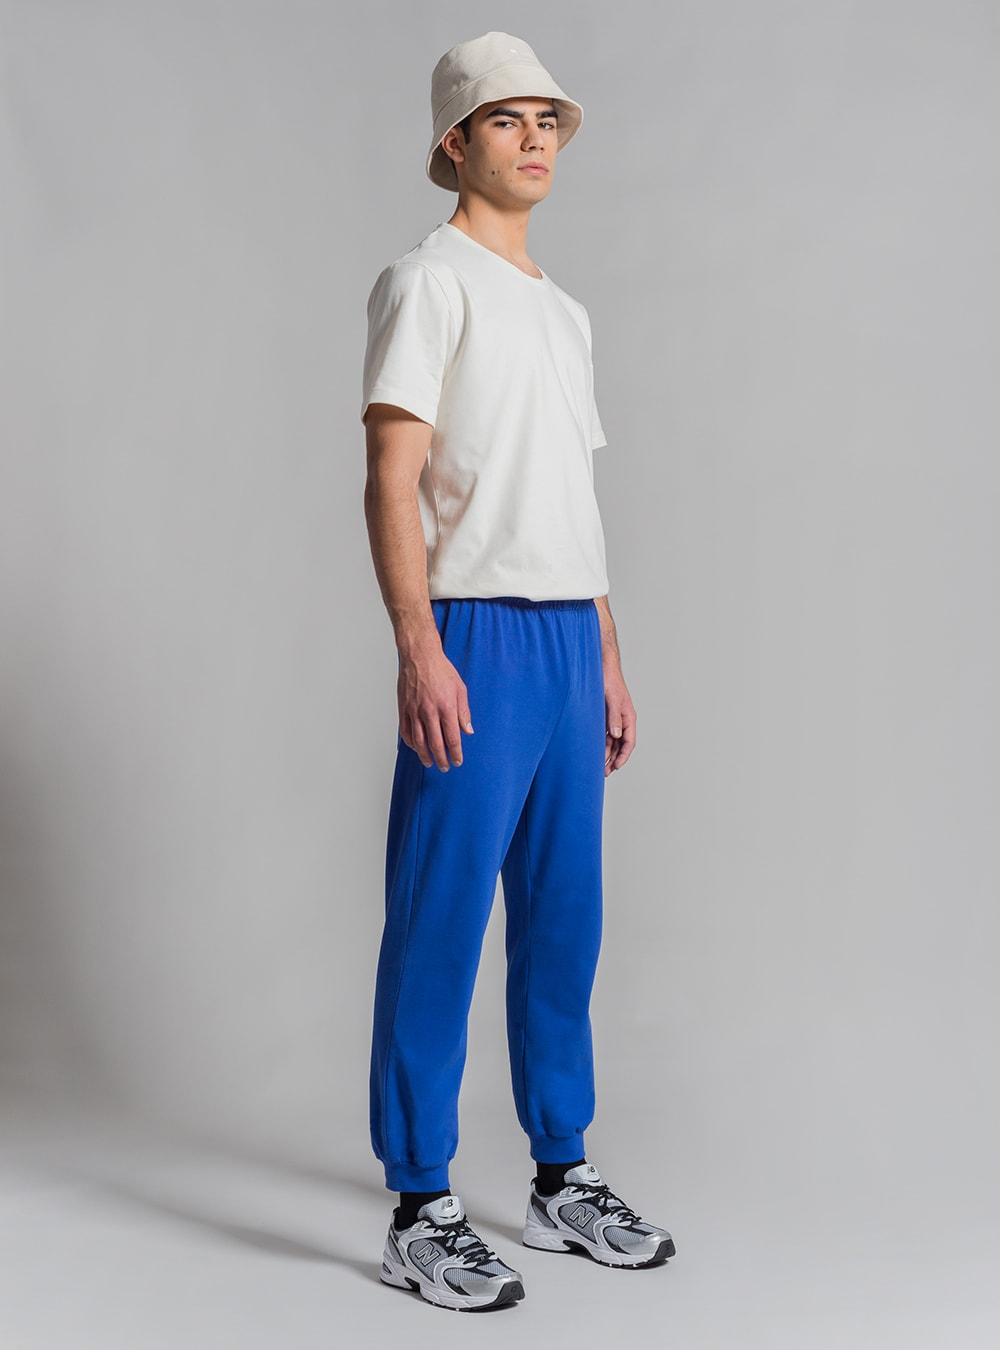 Relaxed jersey pants (blue) made in Portugal by wetheknot